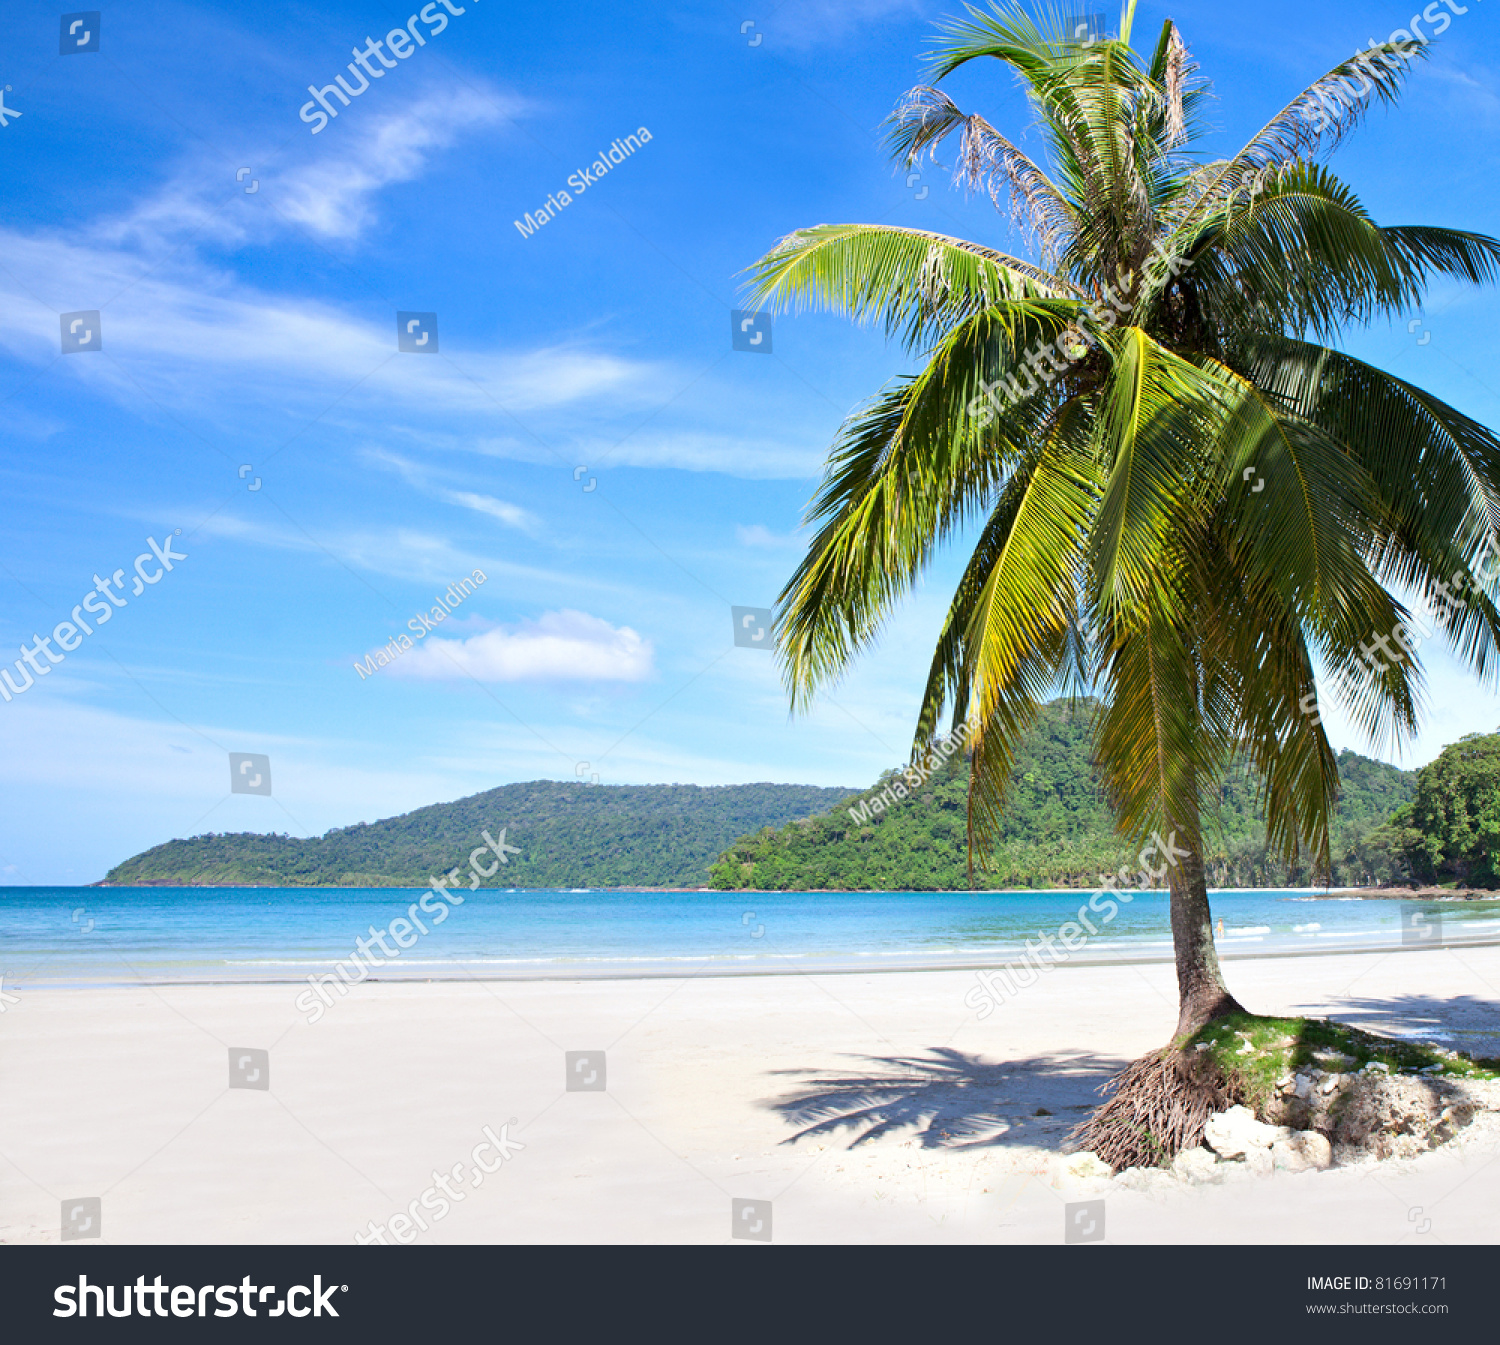 Exotic Beach: Summer Tropical Beach With Coconut Palm Trees Under Blue